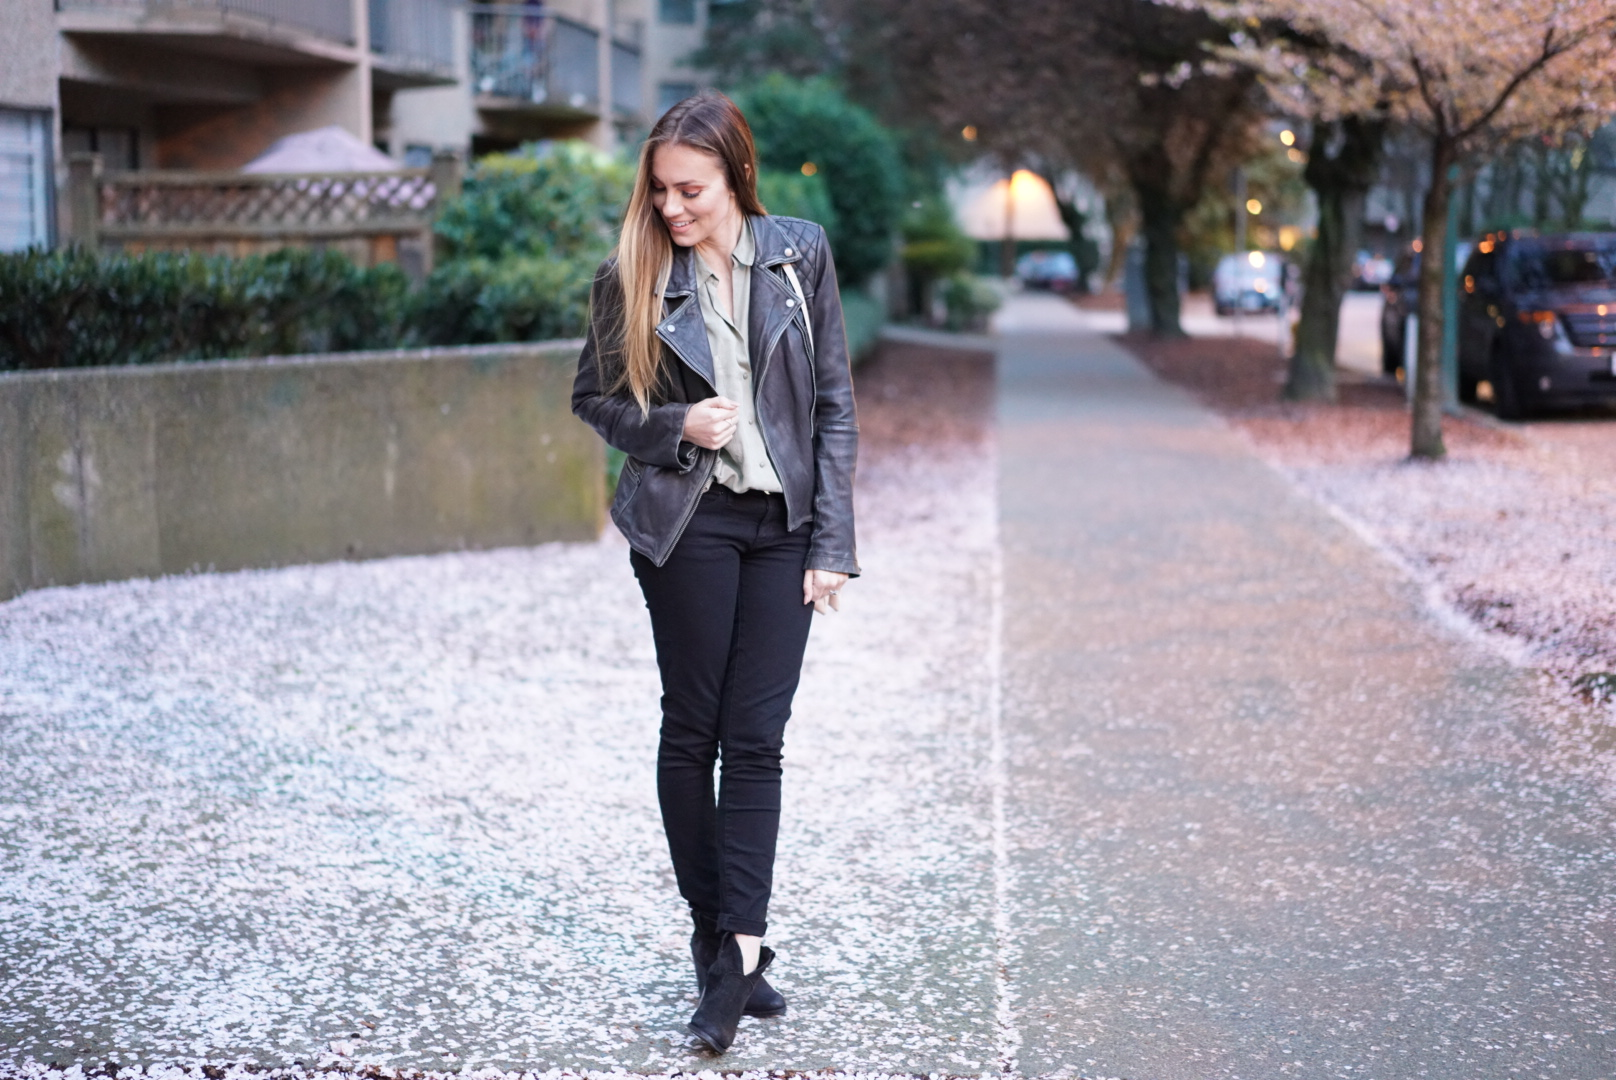 All Saints Cargo Leather jacket, zara olive green button-up shirt and urban outfitters black jeans